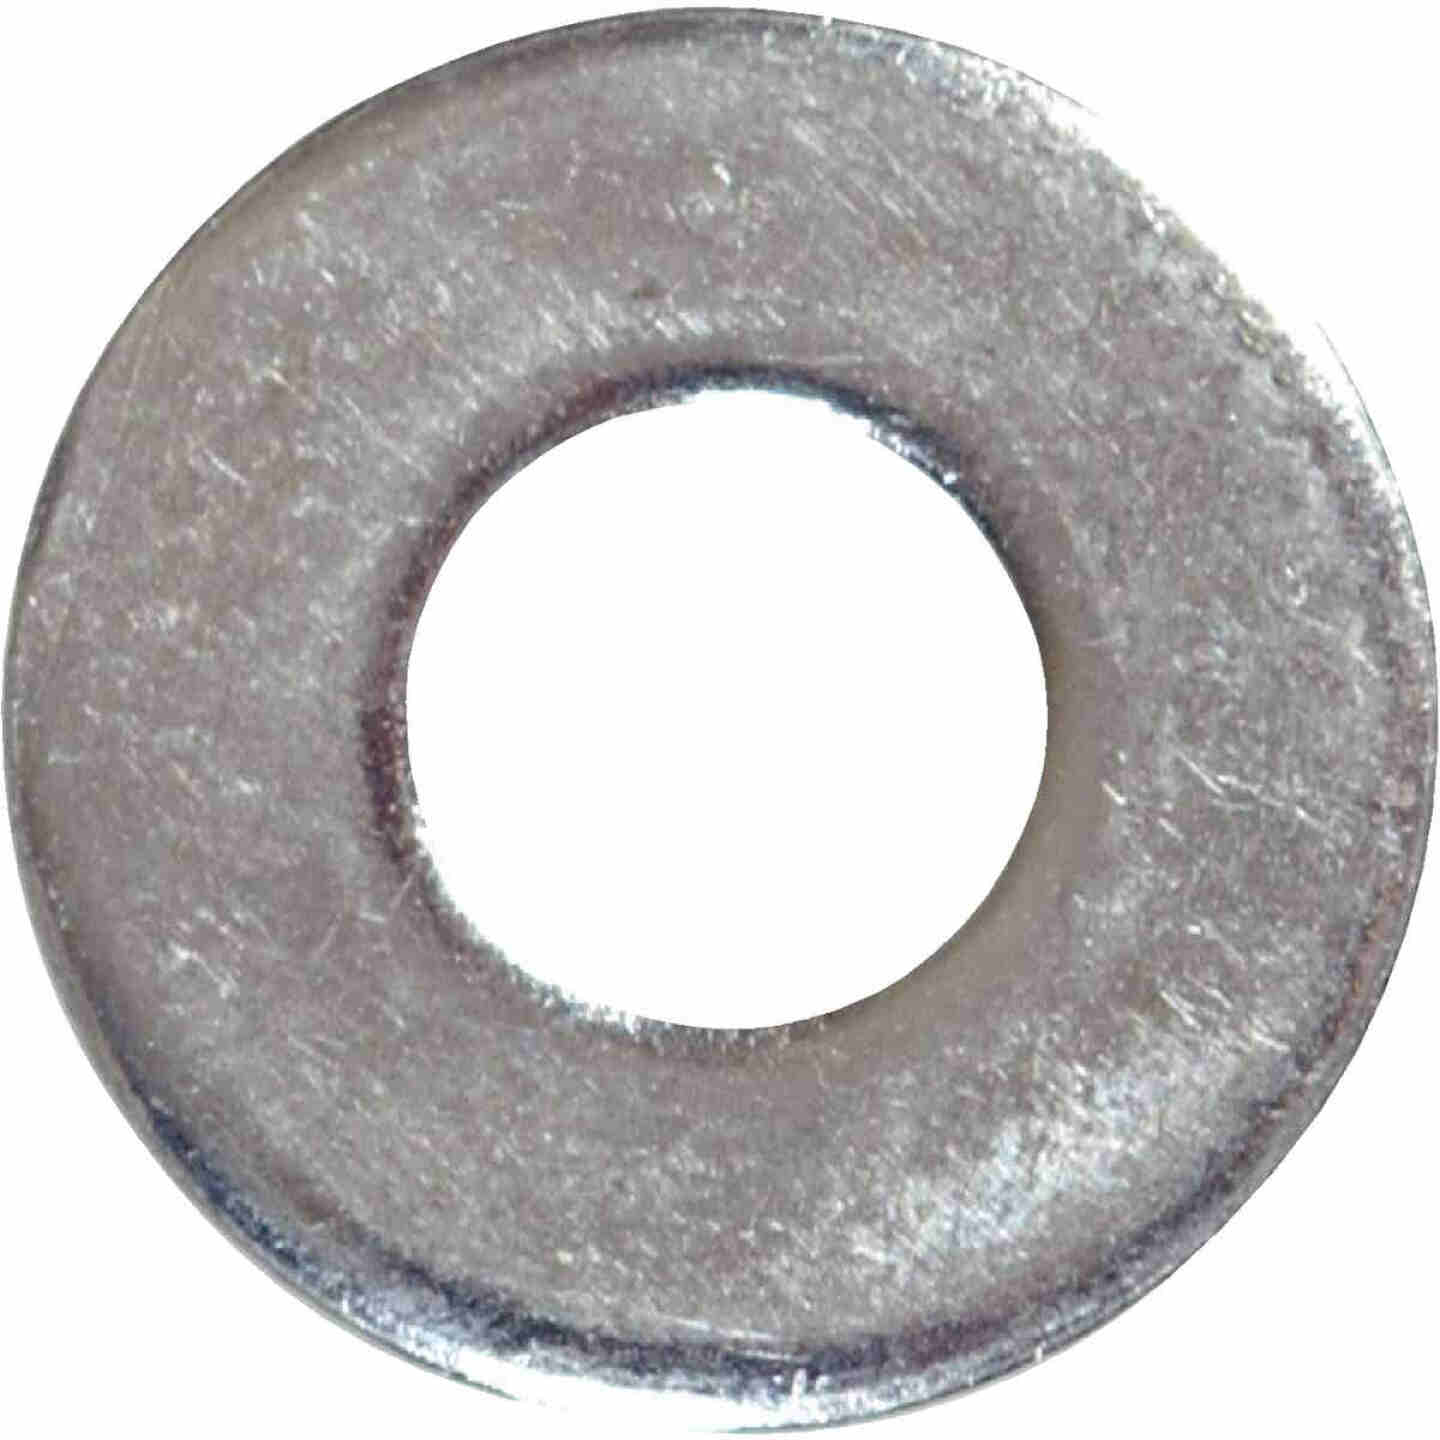 Hillman 3/16 In. Steel Zinc Plated Flat USS Washer (1805 Ct., 5 Lb.) Image 1